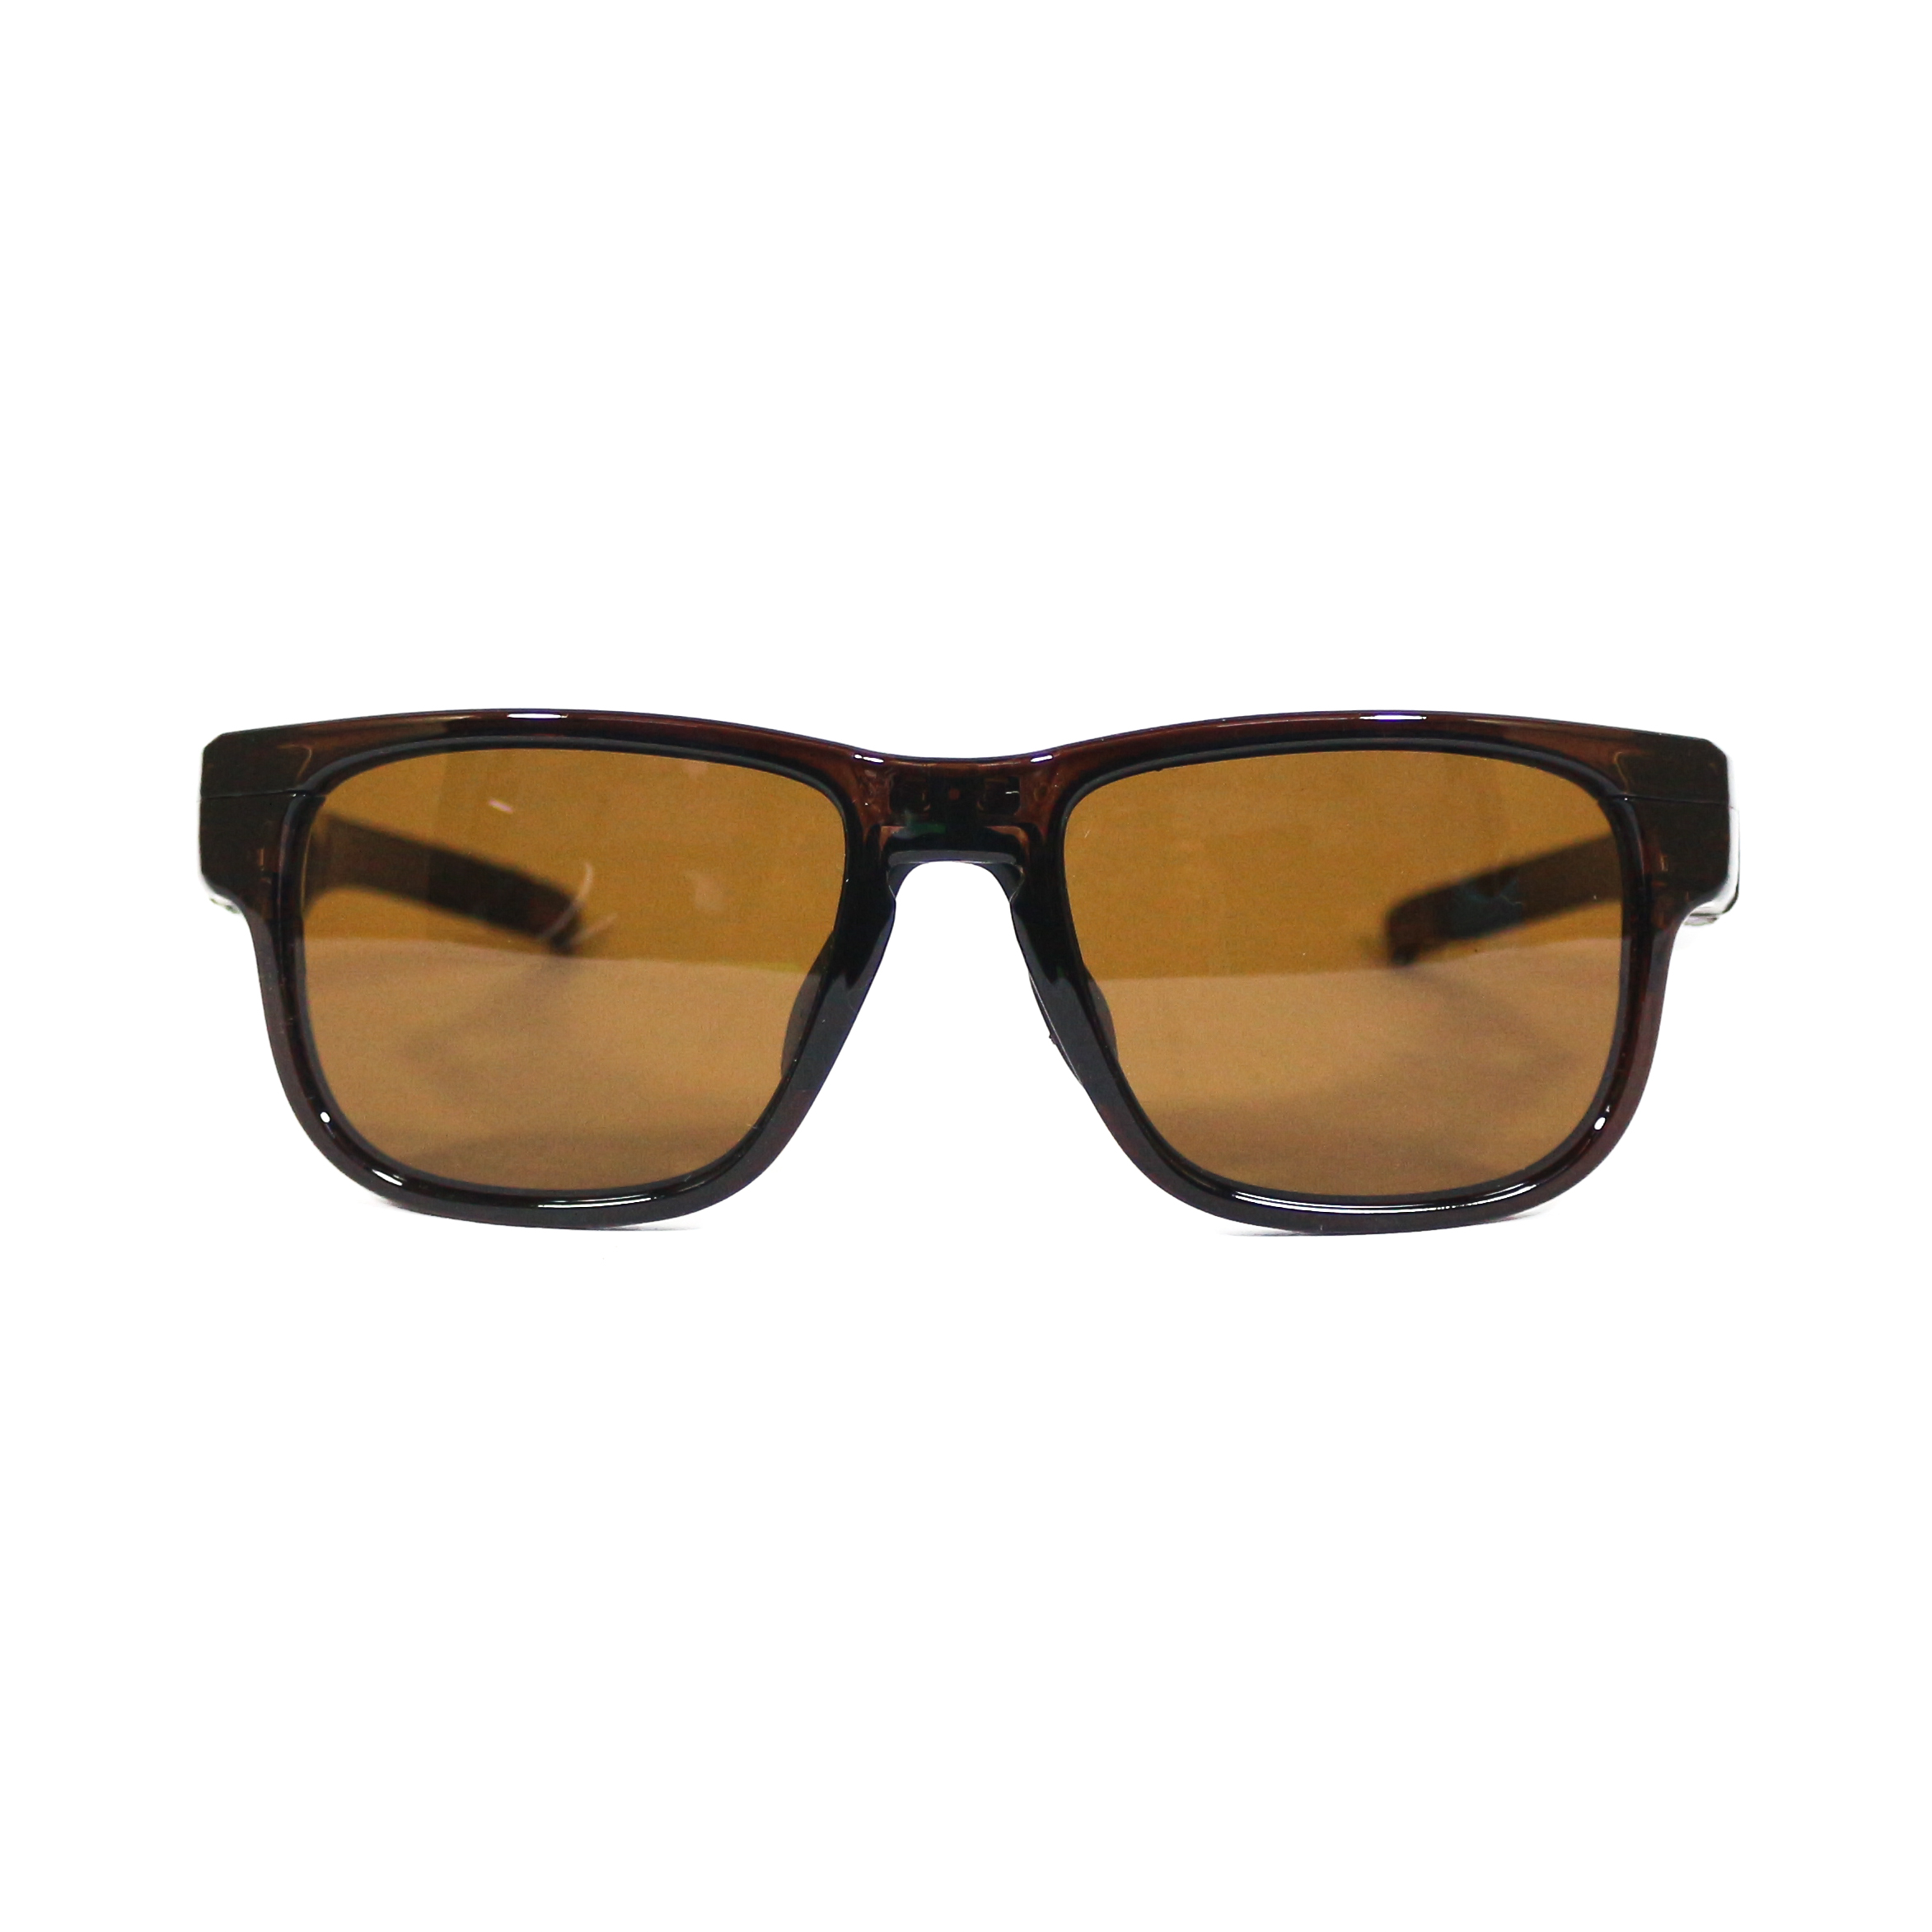 Zeal Polarised Fishing Sunglasses Bunny Walk BW-0183F Clr Brown/Blk (0839)